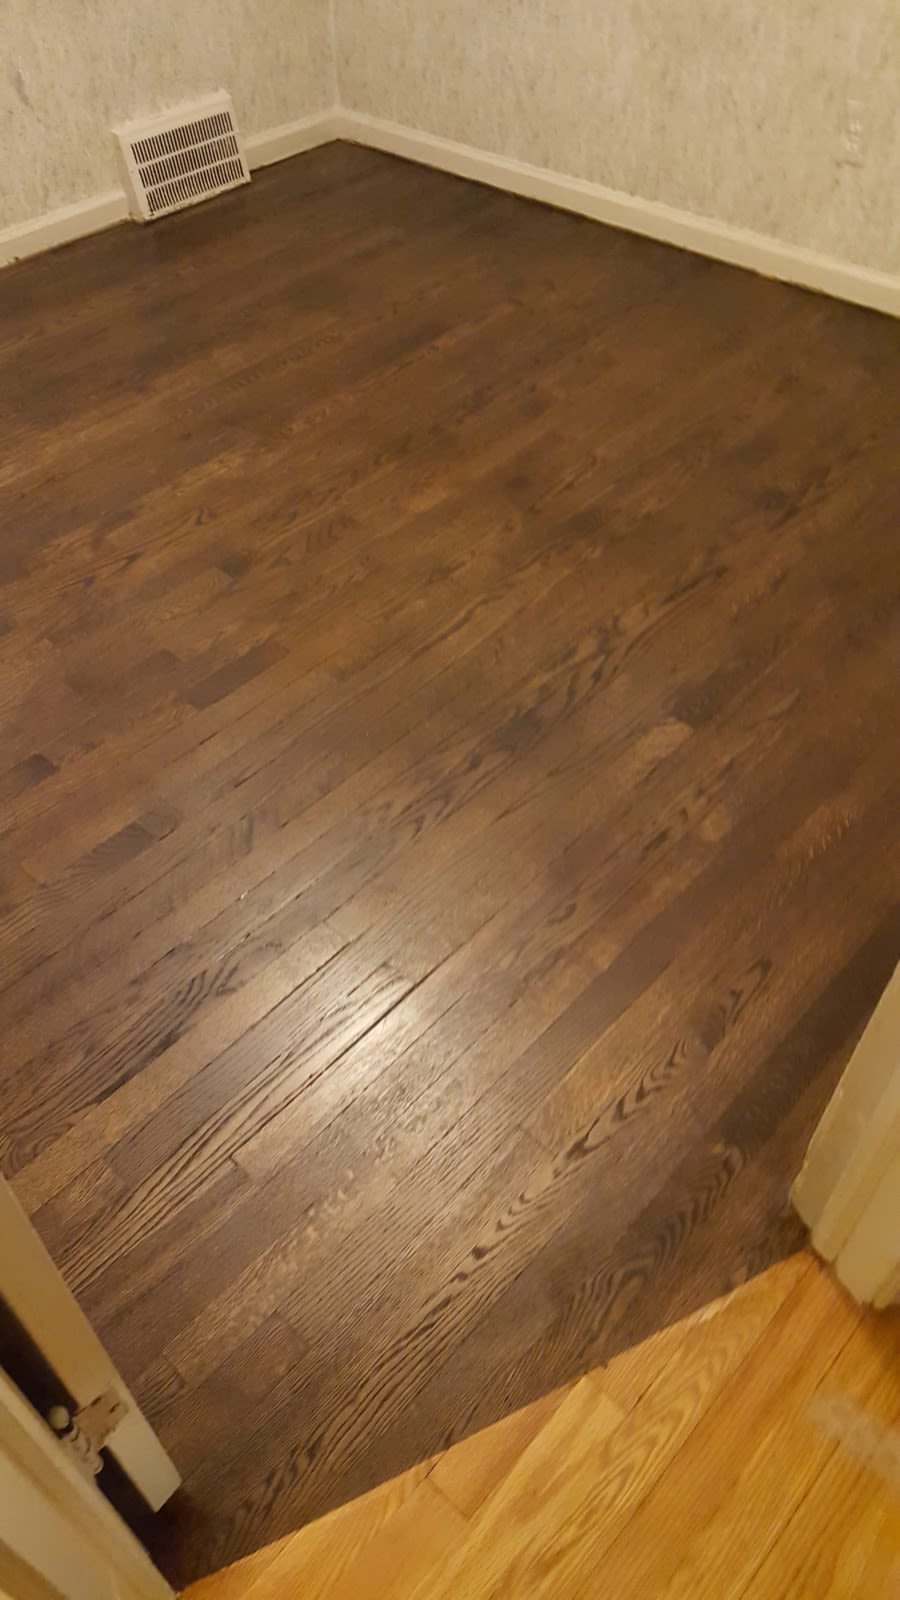 Image showing that same old damaged hardwood floor finished with a dark stain